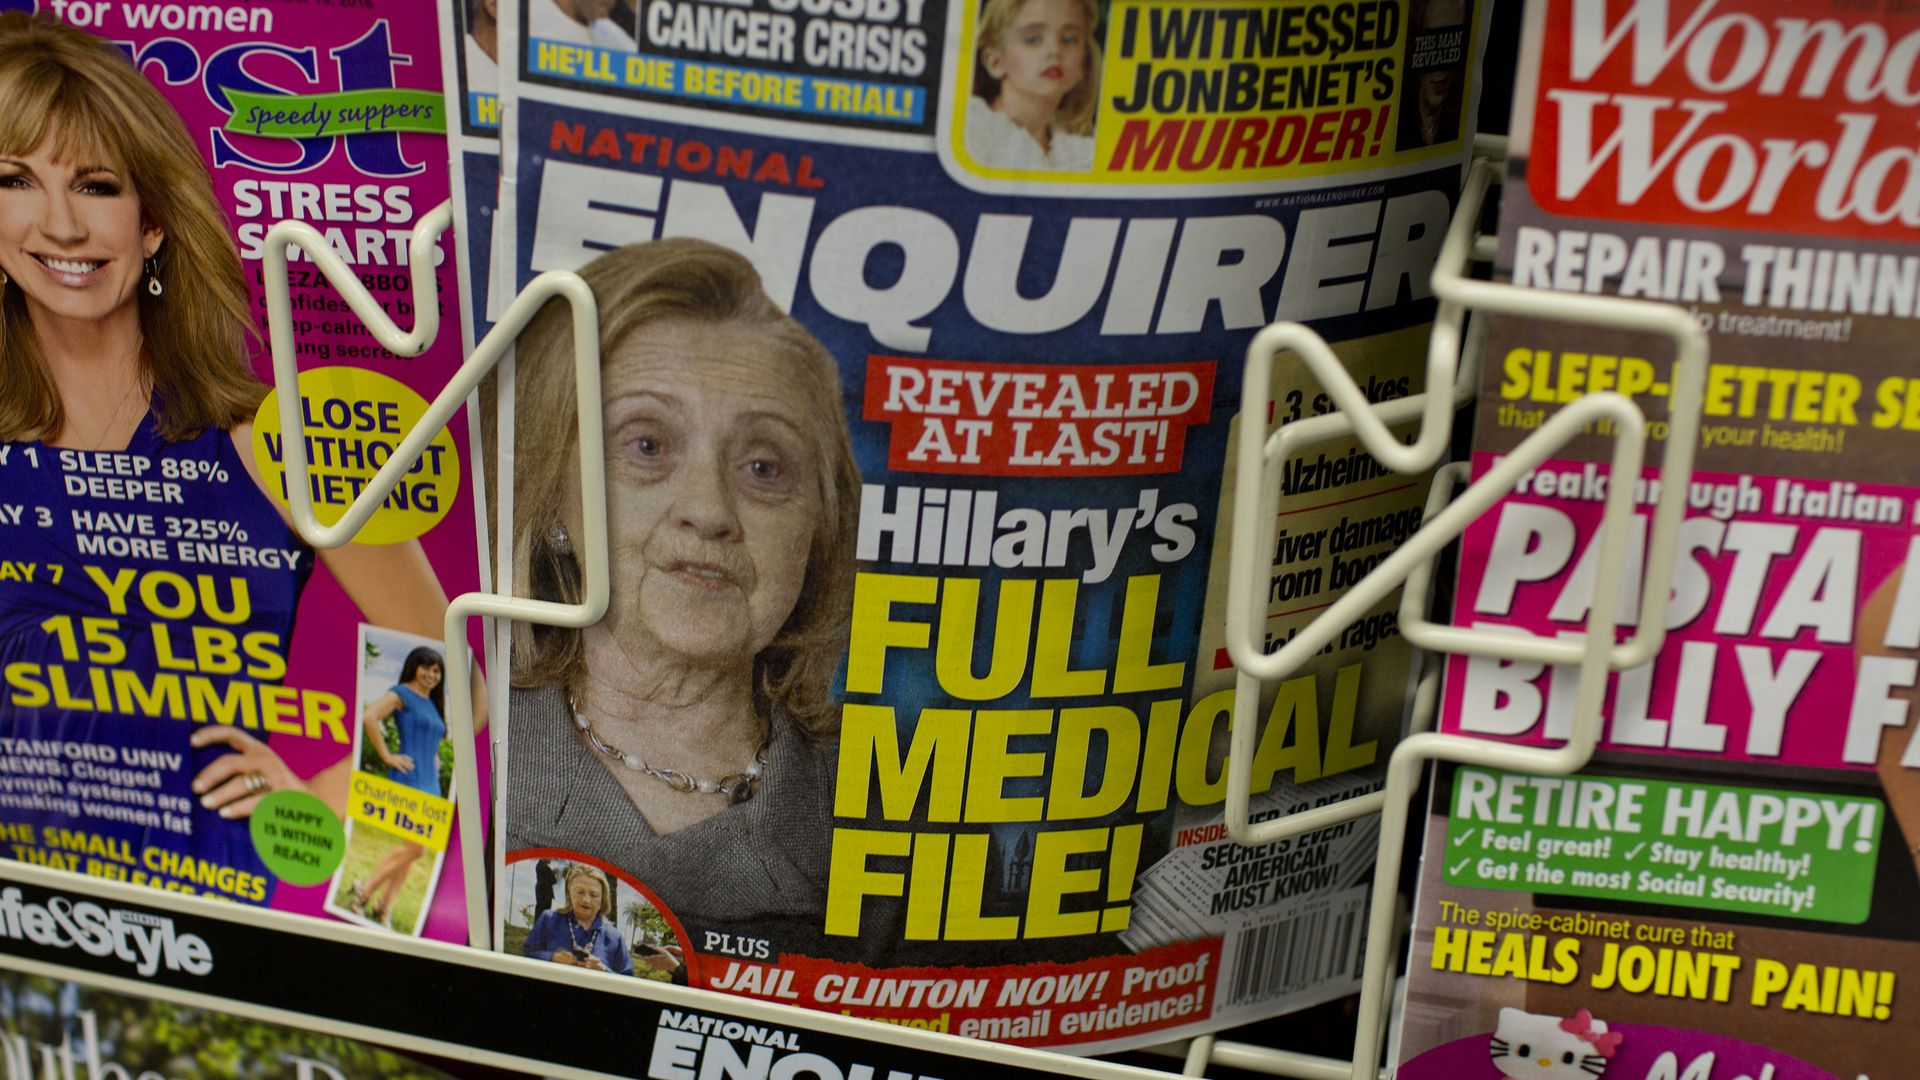 Cover of the National Enquirer reporting about Hillary Clinton's health